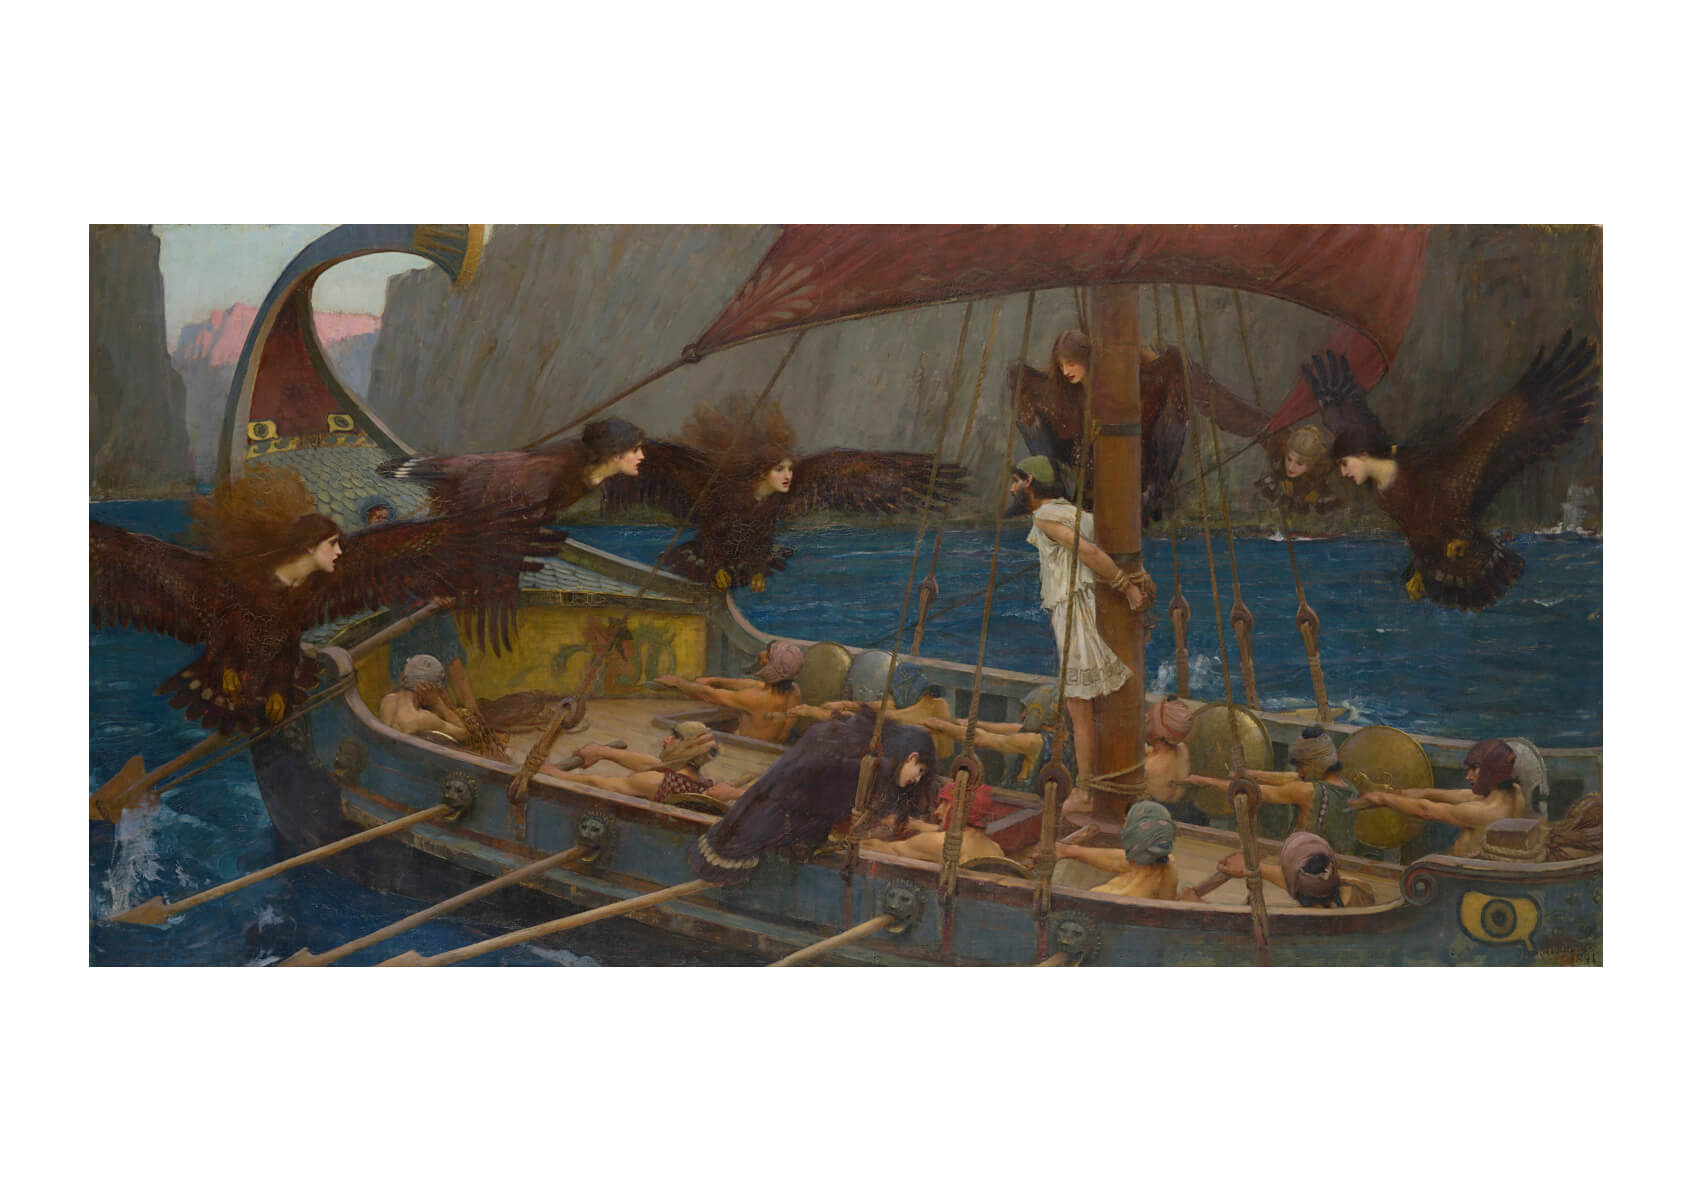 John William Waterhouse Ulysses and the Sirens